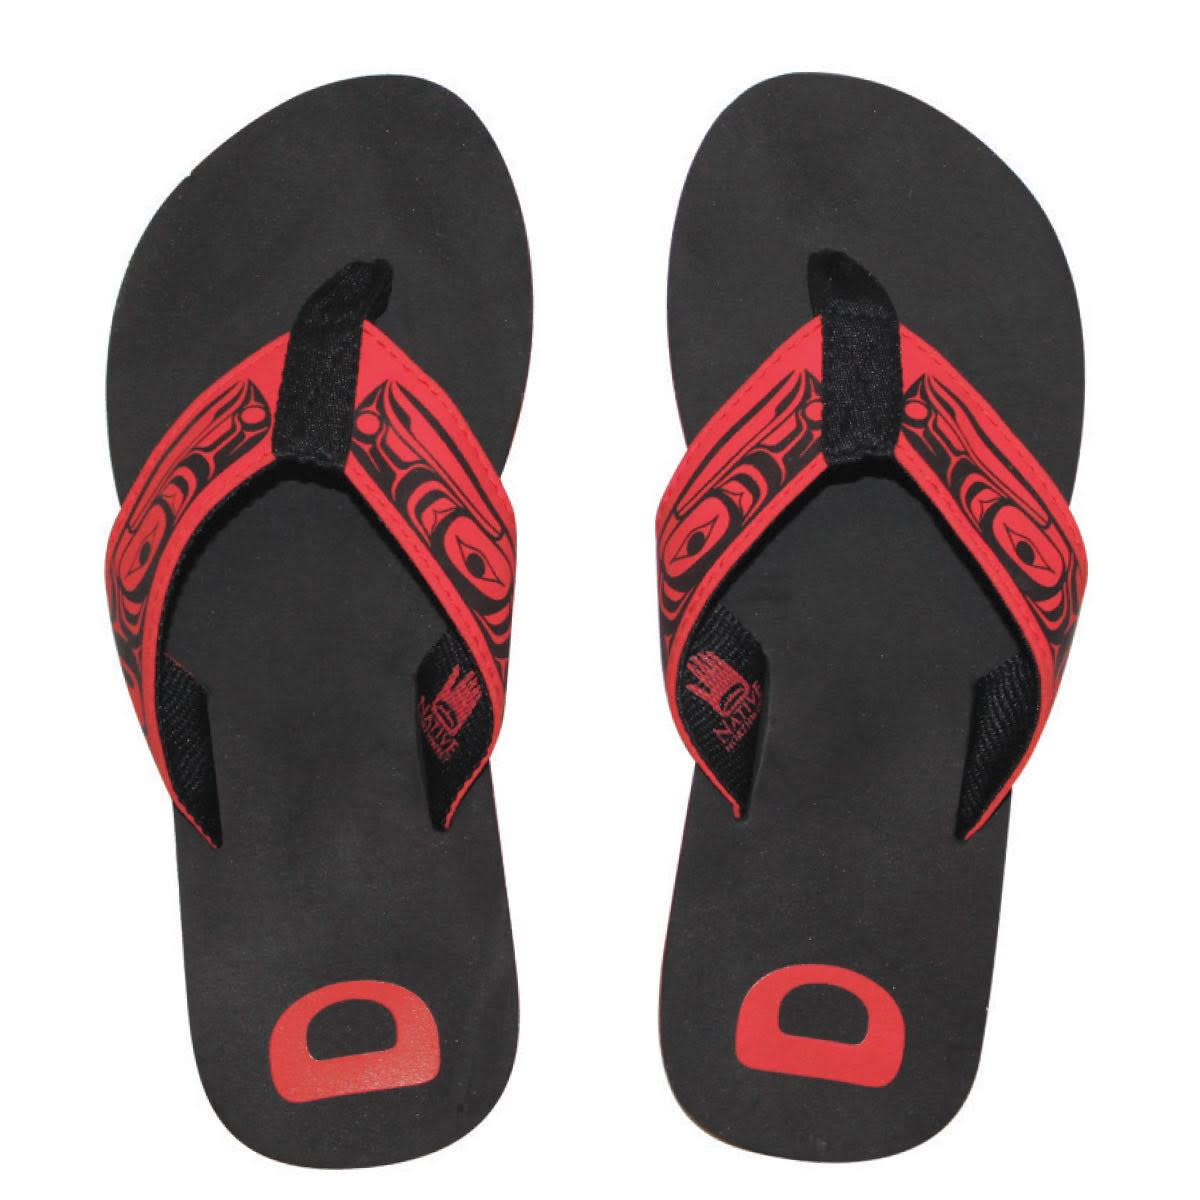 Suede Flip Flops - Raven by Terry Star-1